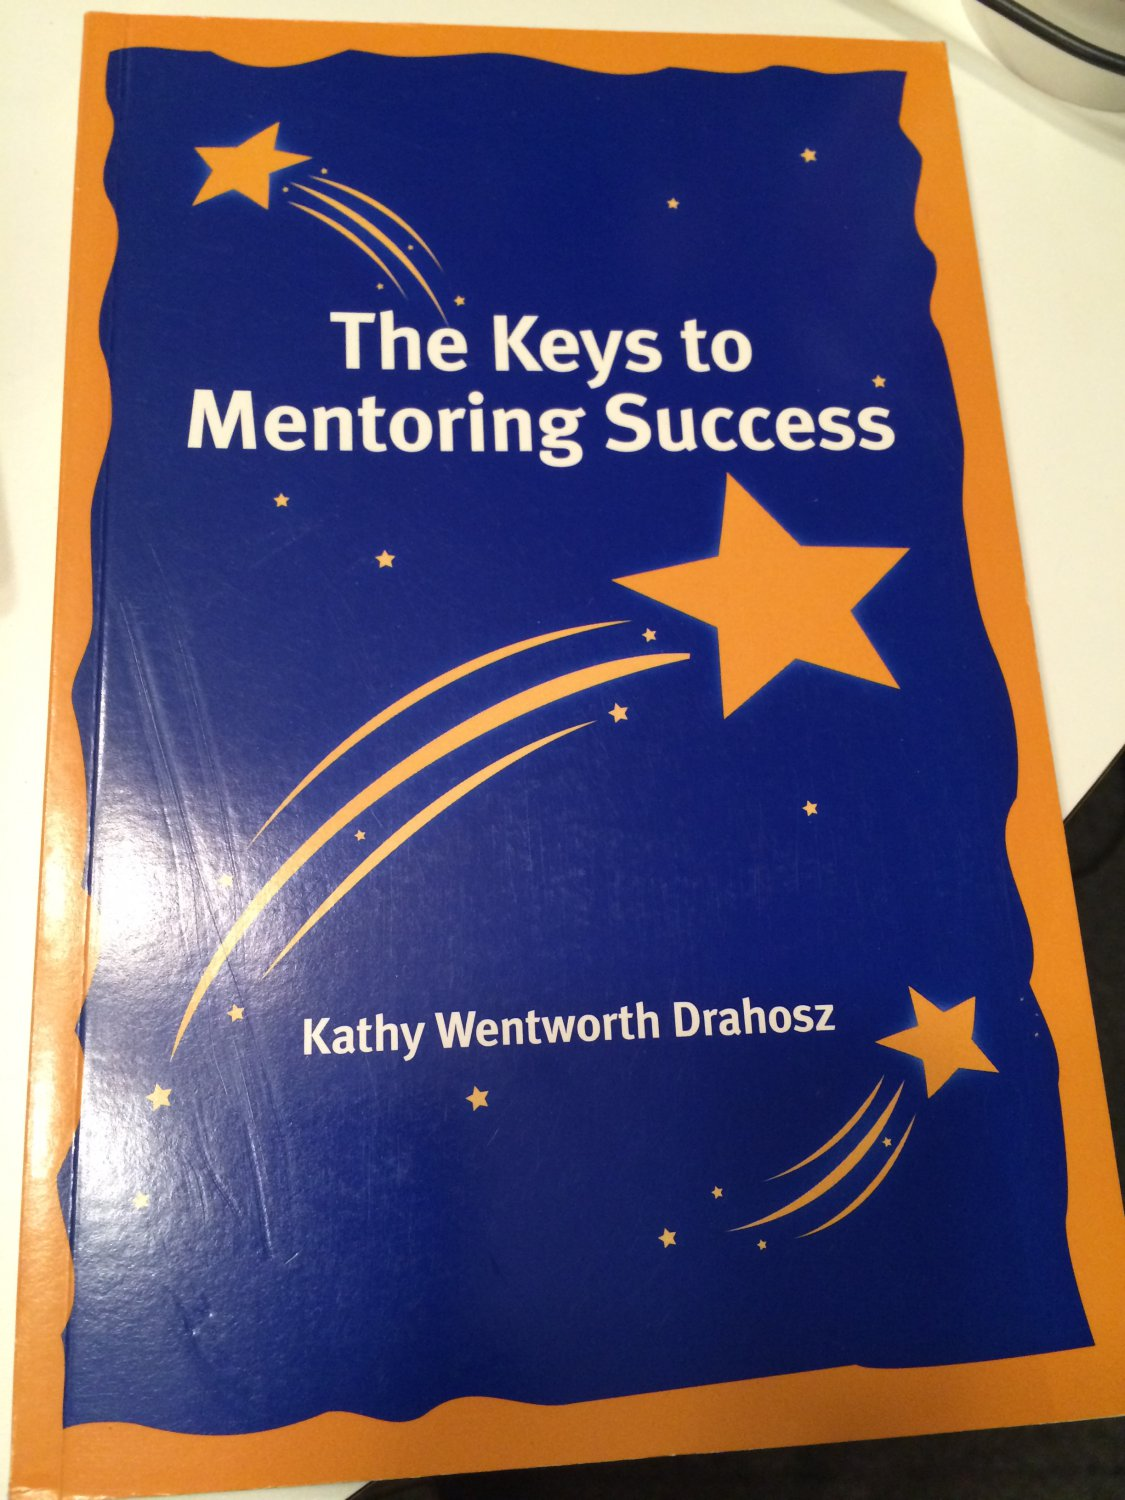 The Keys to Mentoring Success [Paperback] [Feb 01, 2004] Drahosz, Kathy Wentworth